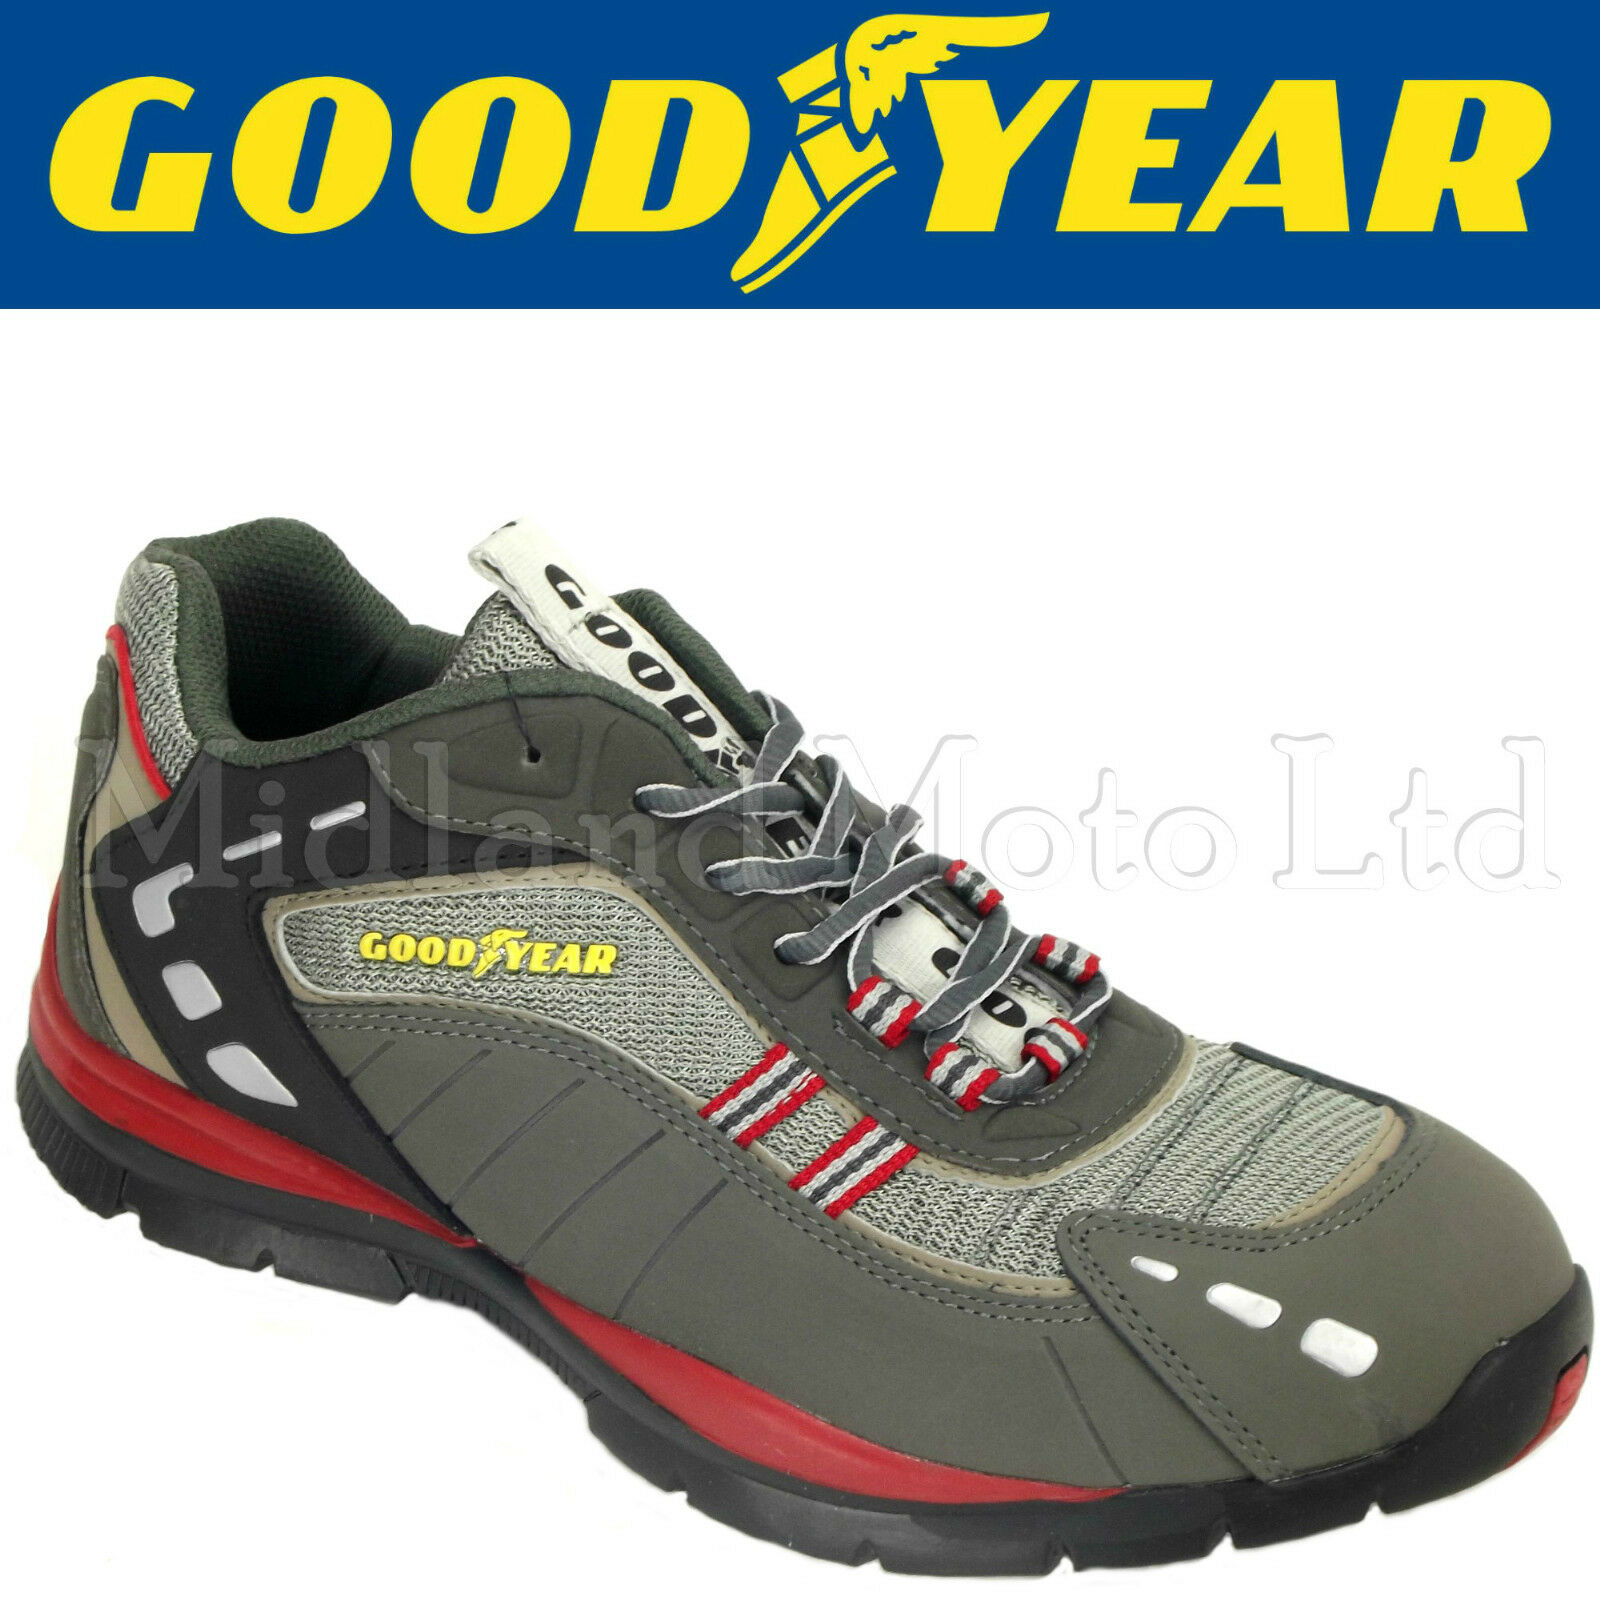 GOODYEAR Steel Toe Cap Trainer Style Safety schuhe. Trainers Schuhes Boot GY3011